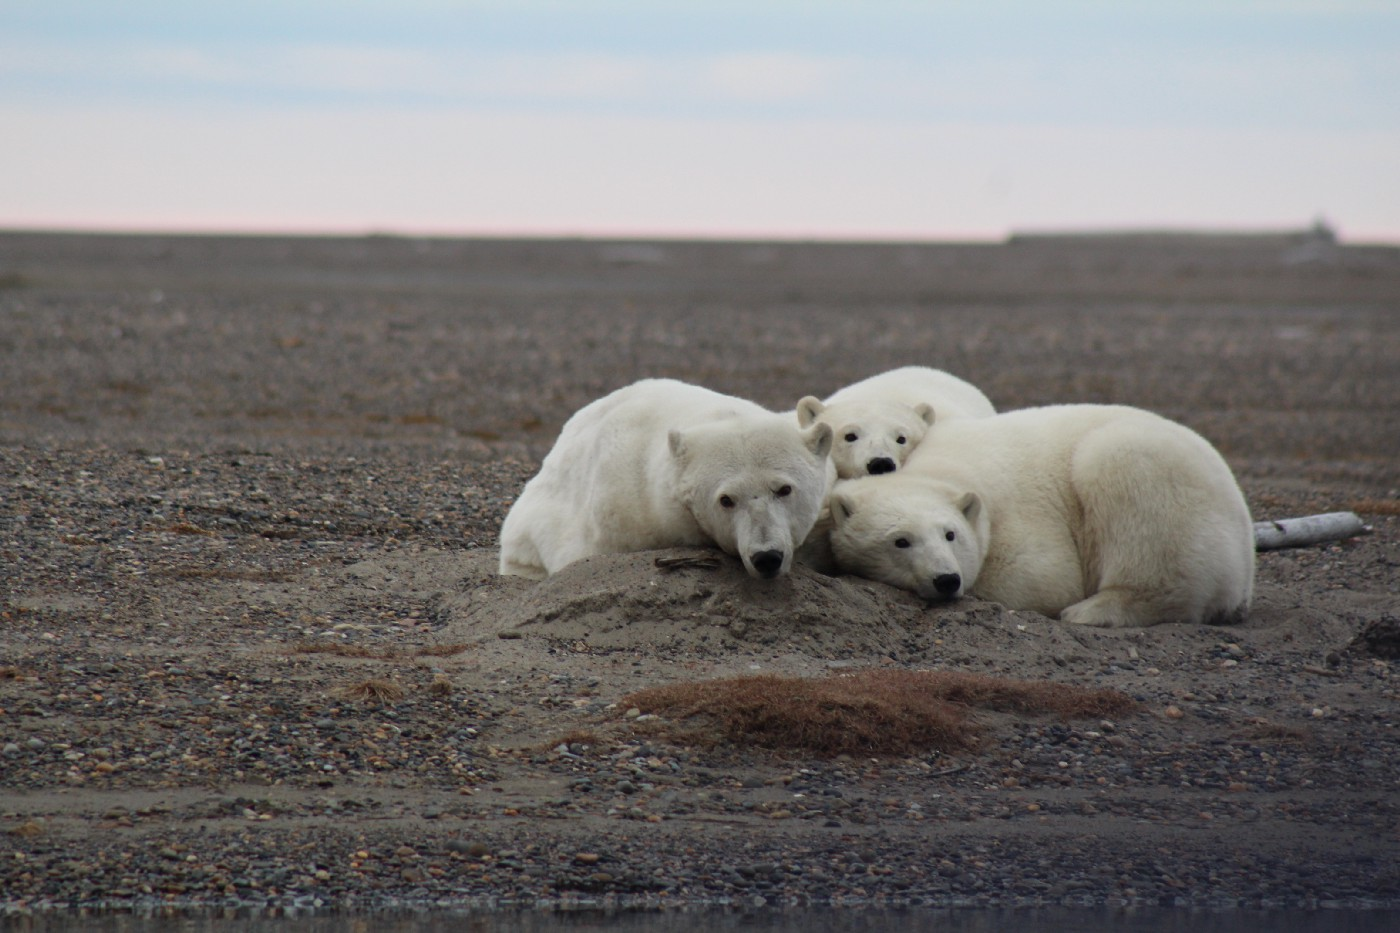 An adult polar bear and two cubs rest their heads together on a gravel island.